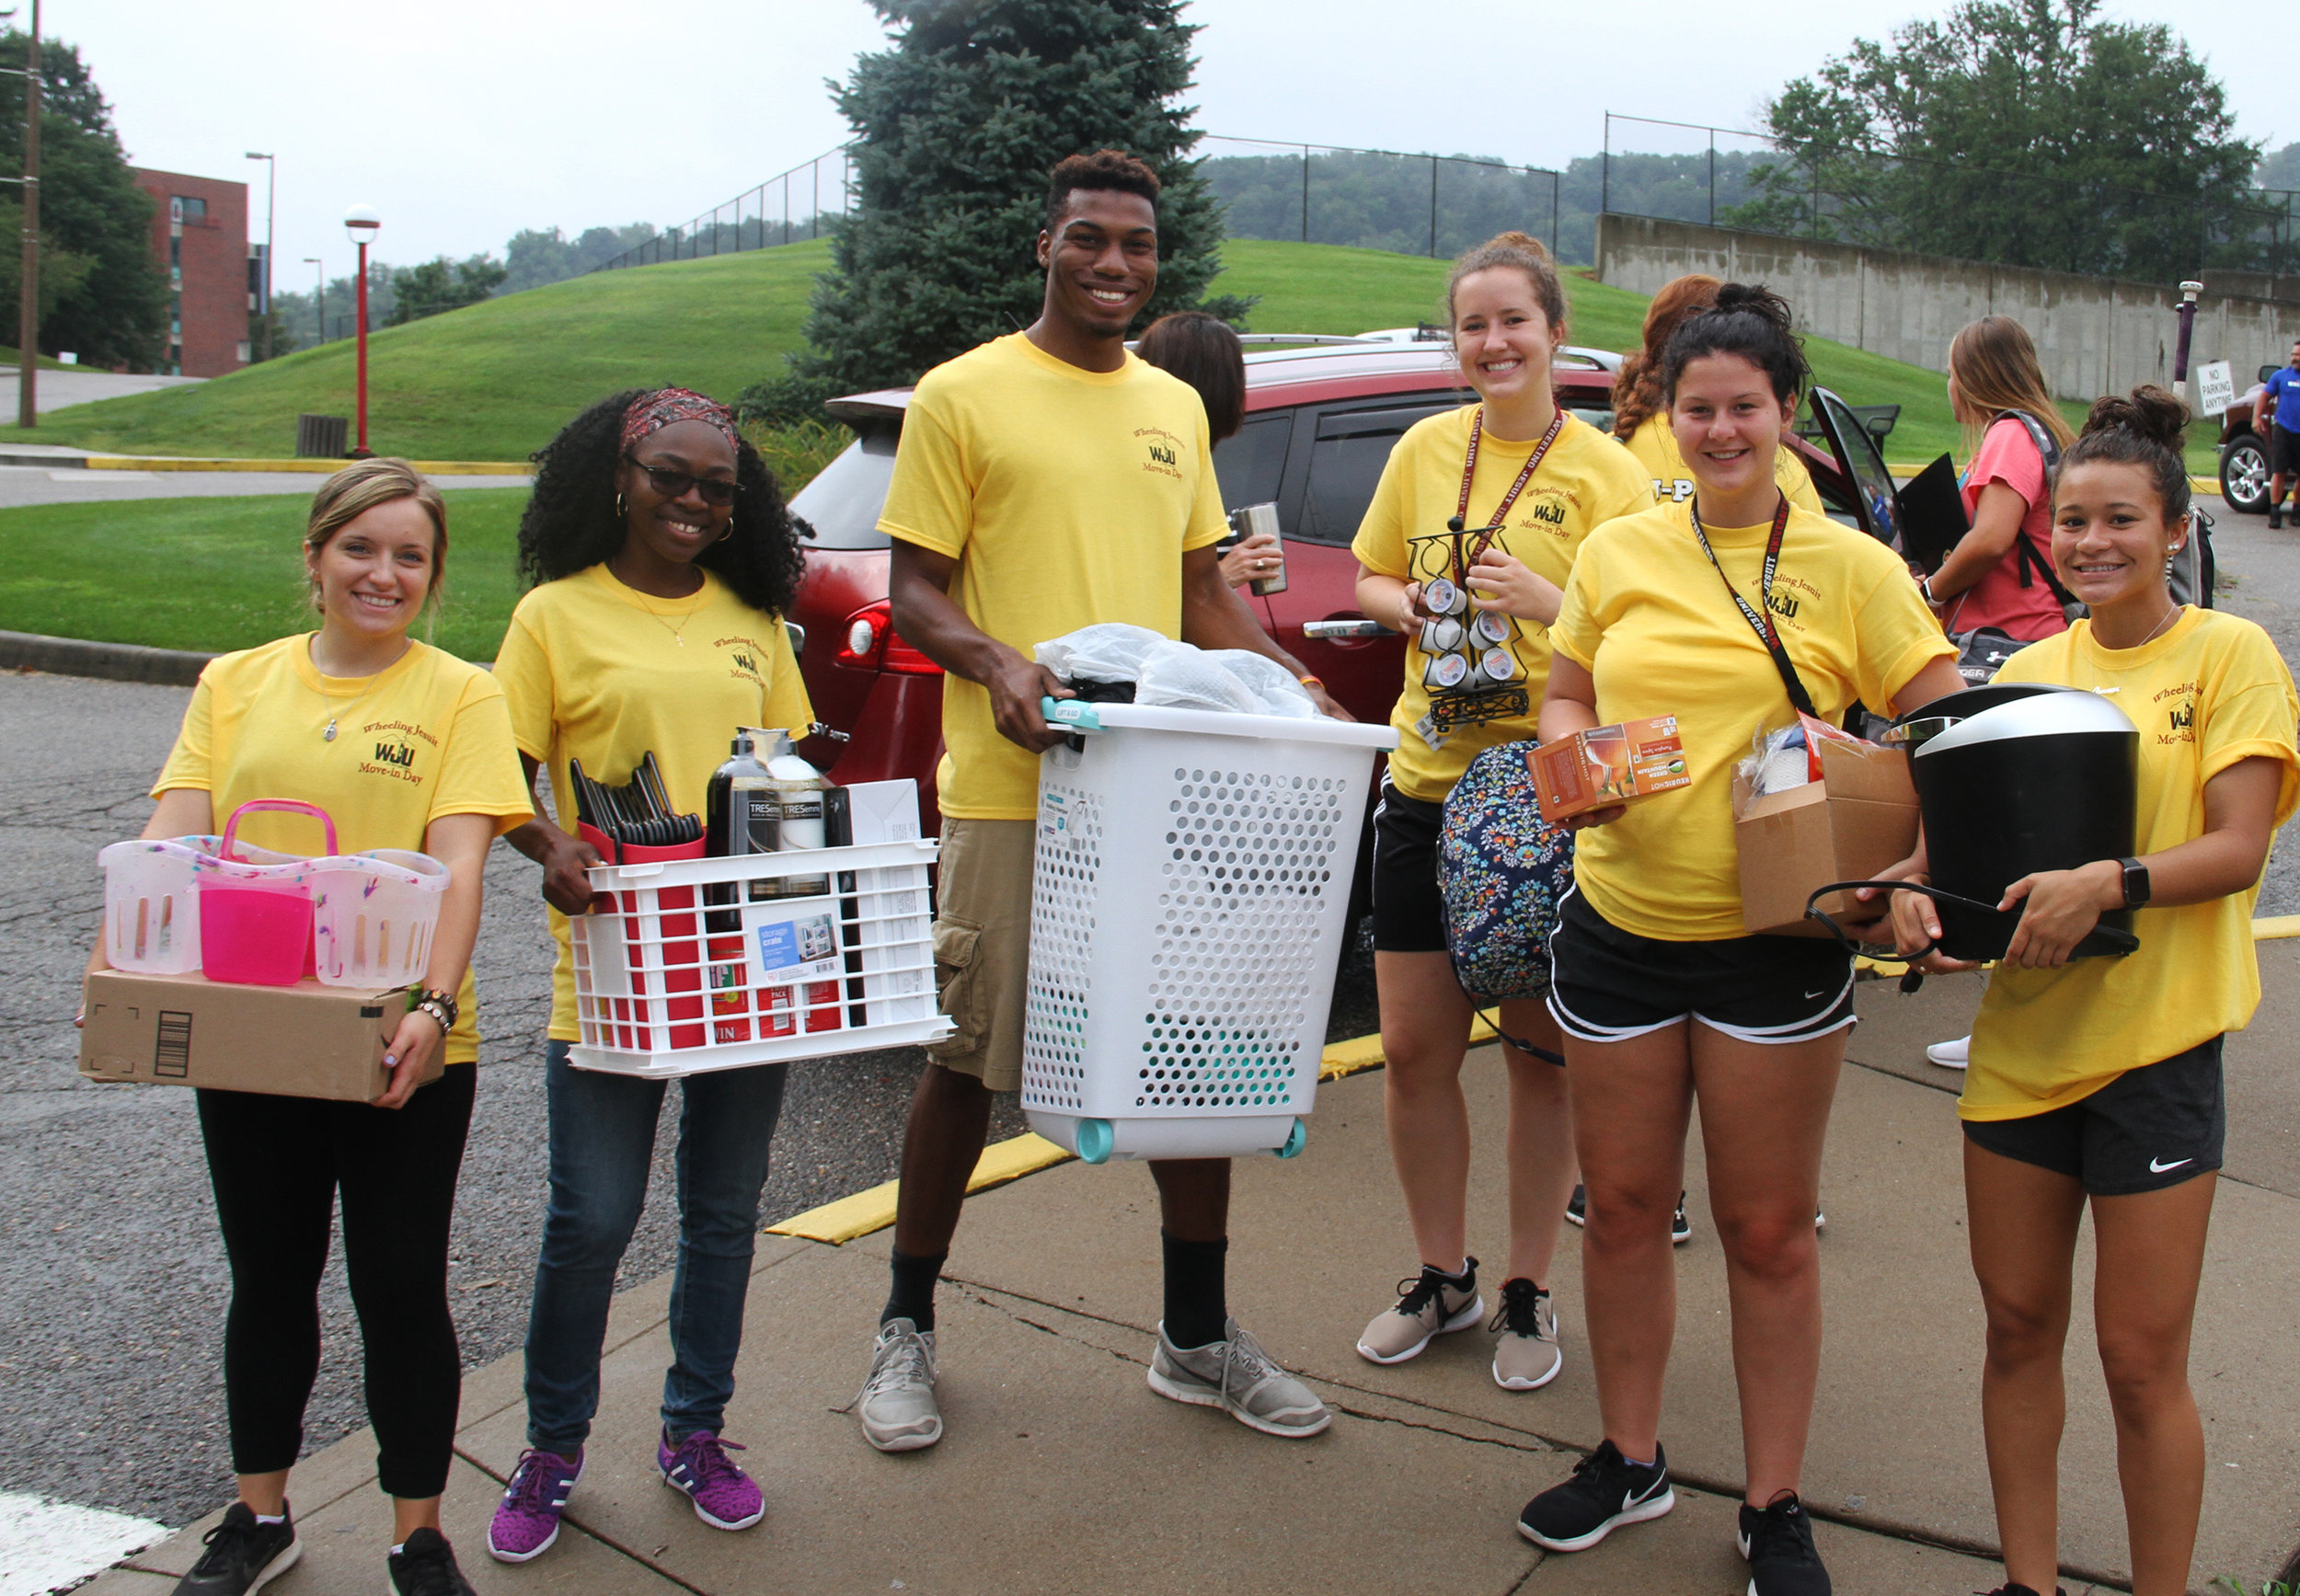 Students on move-in day at Wheeling Jesuit University (Wheeling, WV)